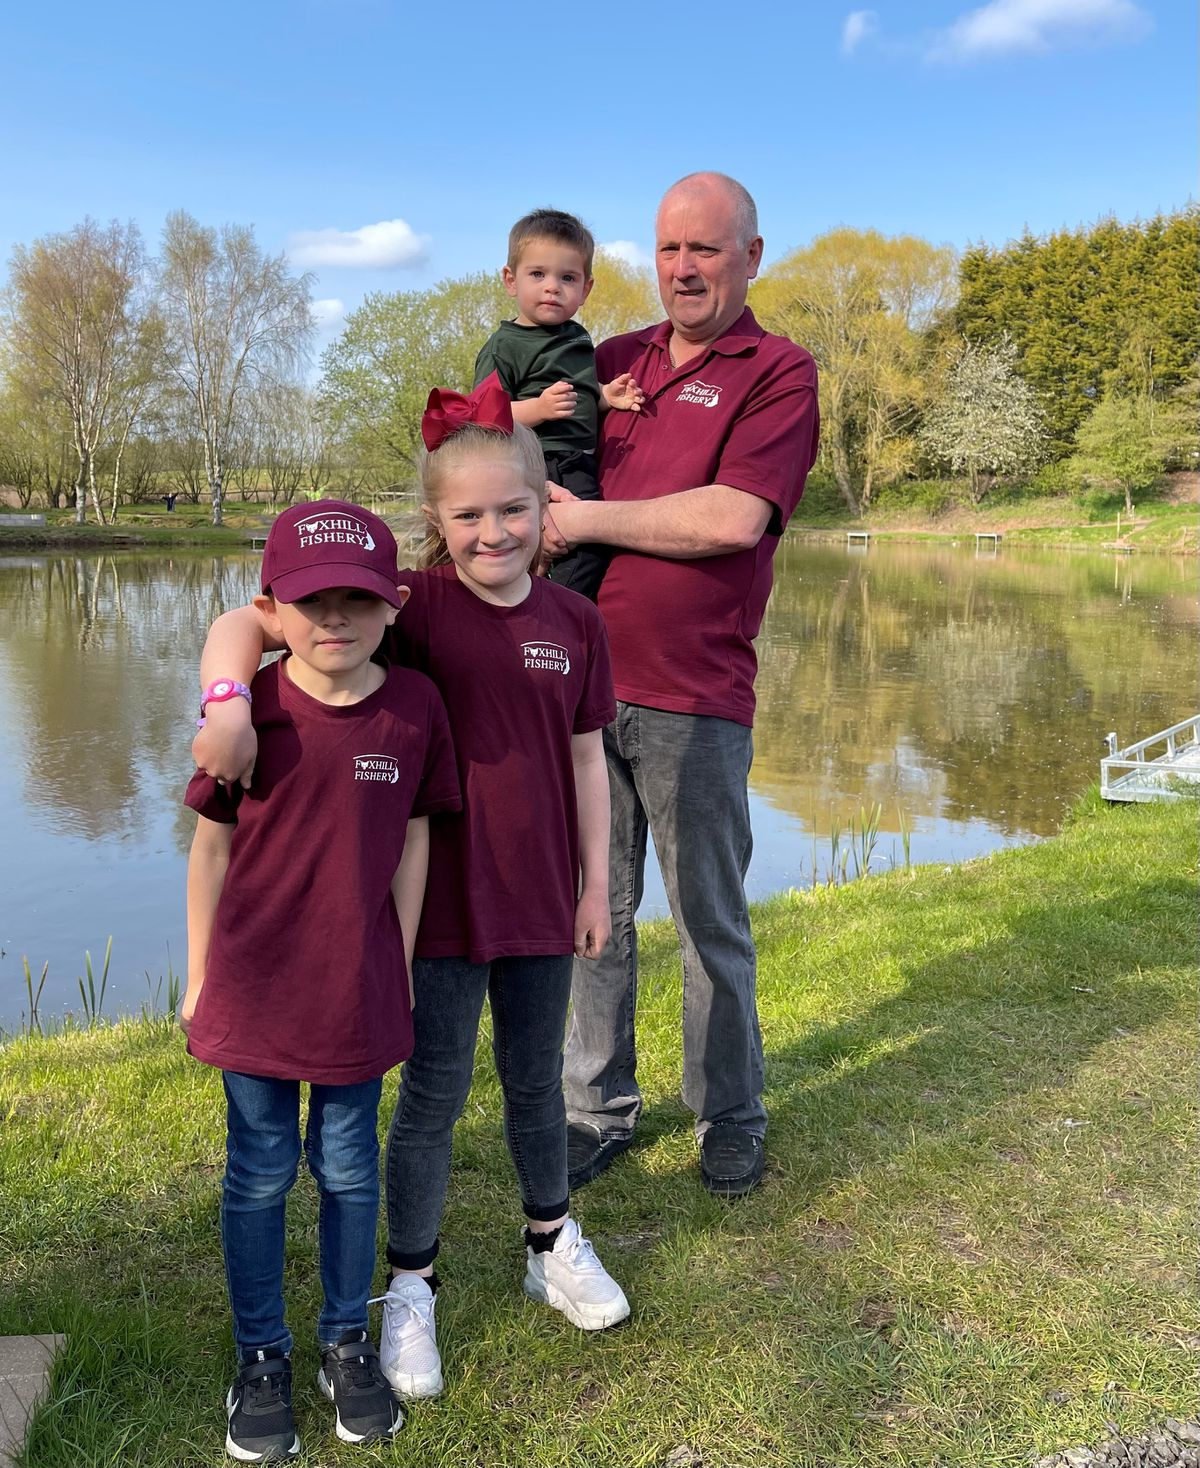 Darren Norris at Foxhills Fishery with some of his family helpers